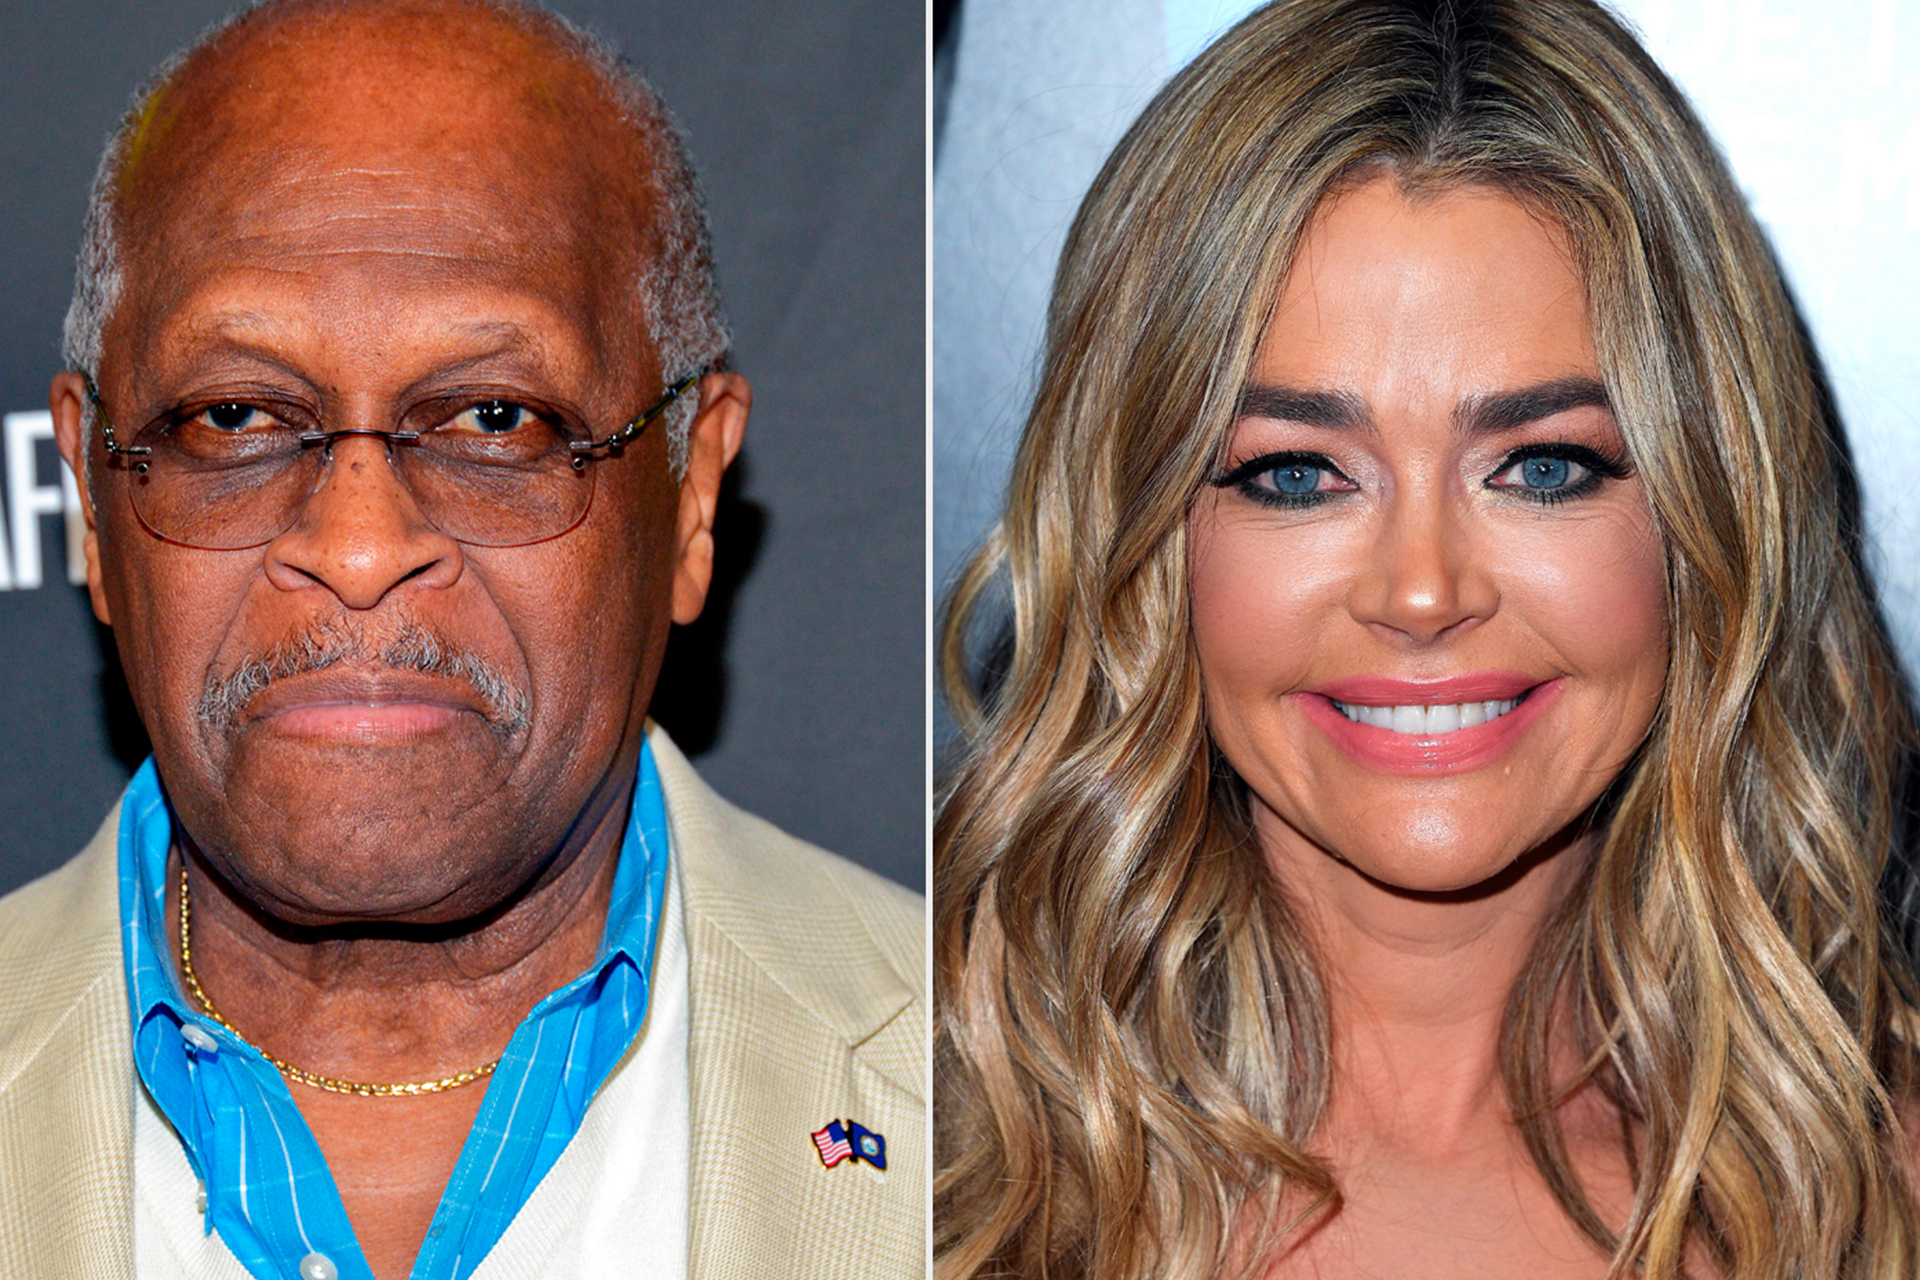 Herman Cain Dead at 74, Plus the Latest RHOBH Drama Between Denise and Brandi